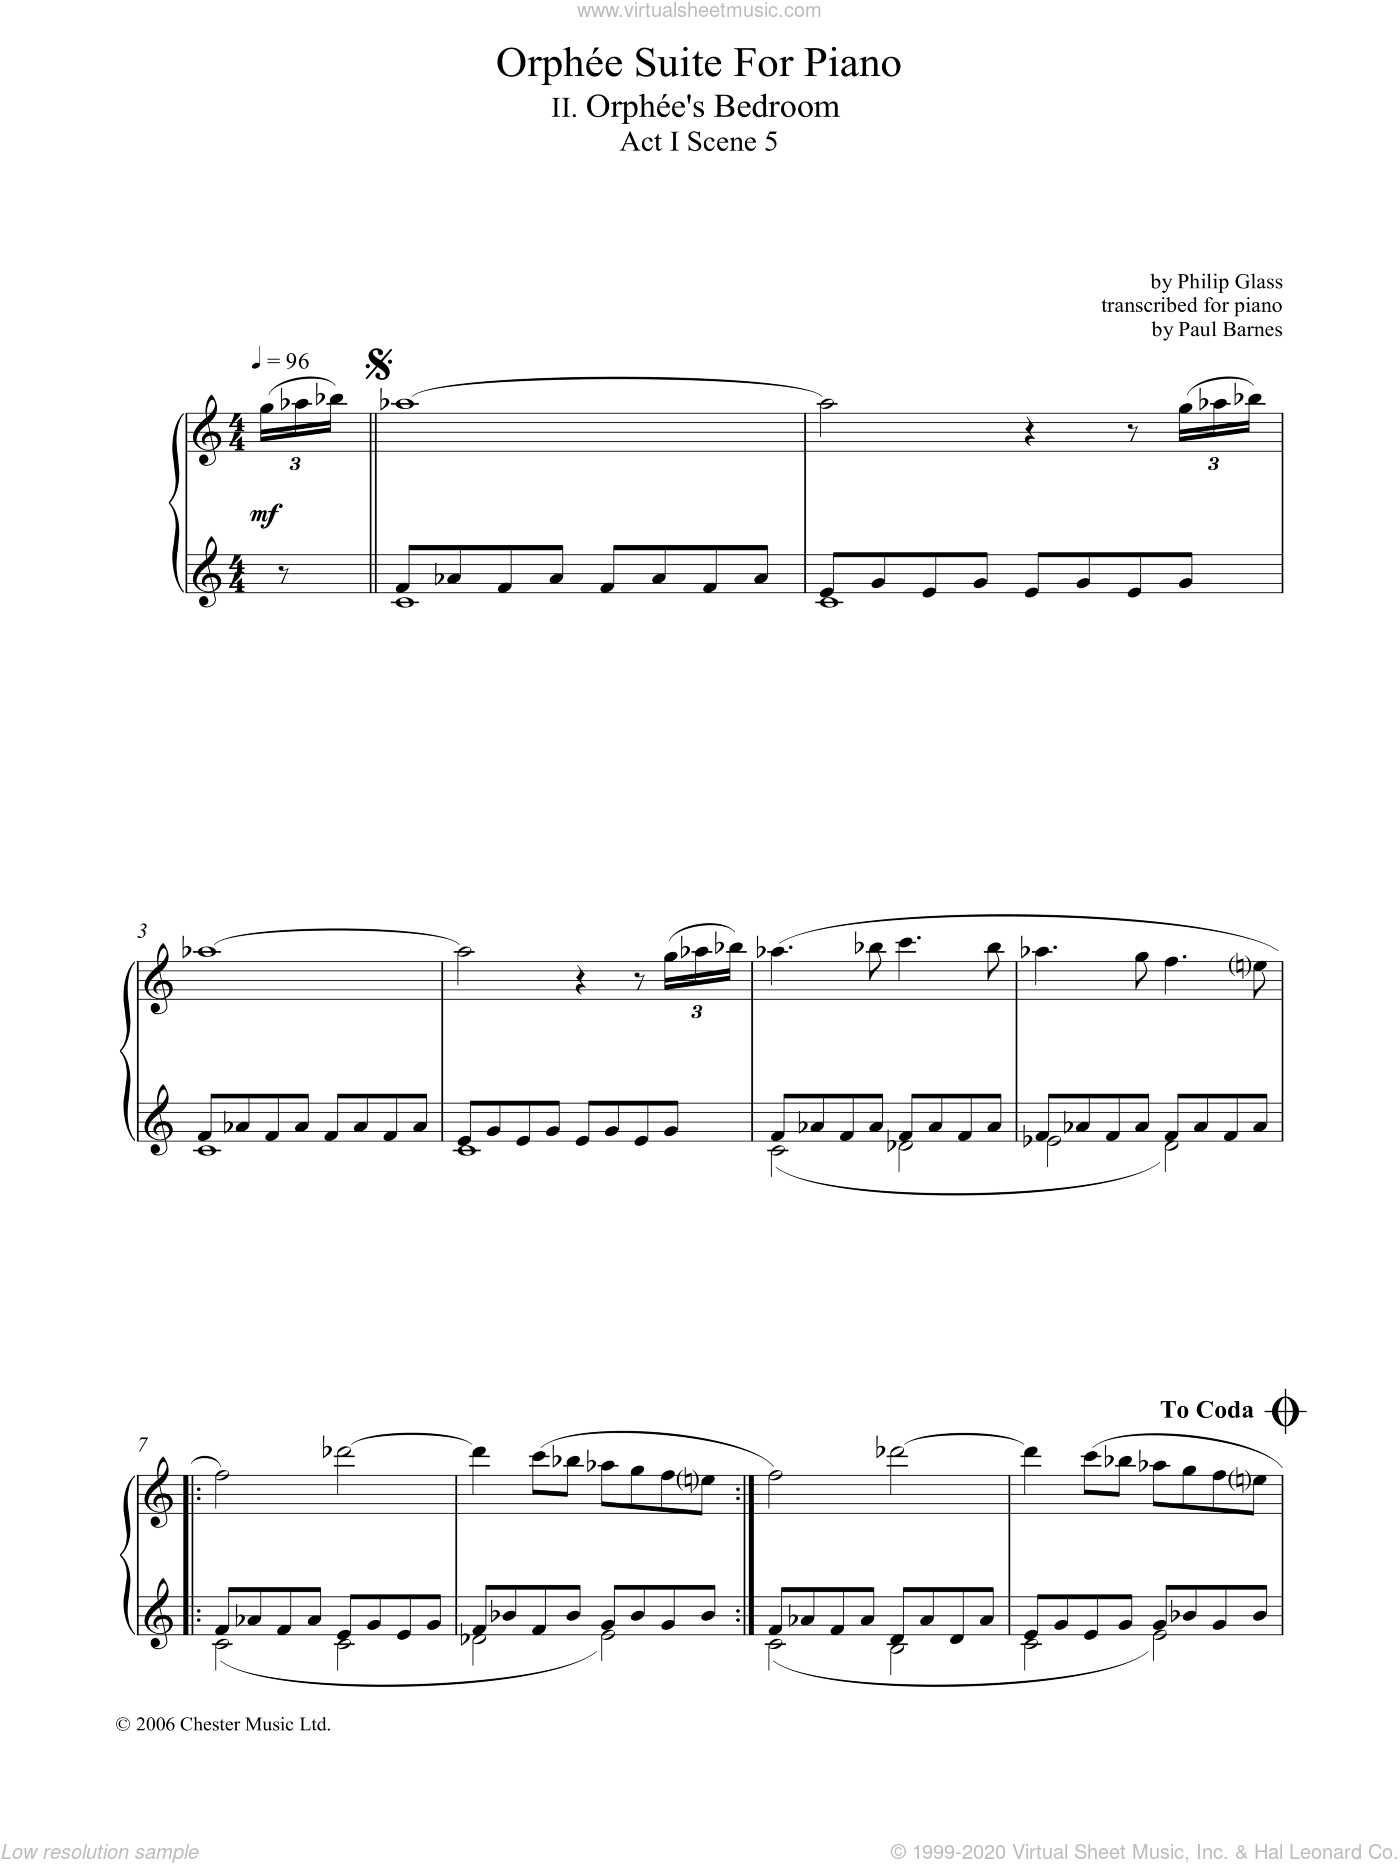 Orphee Suite For Piano, II. Orphee's Bedroom, Act I, Scene 5 sheet music for piano solo by Philip Glass, classical score, intermediate skill level